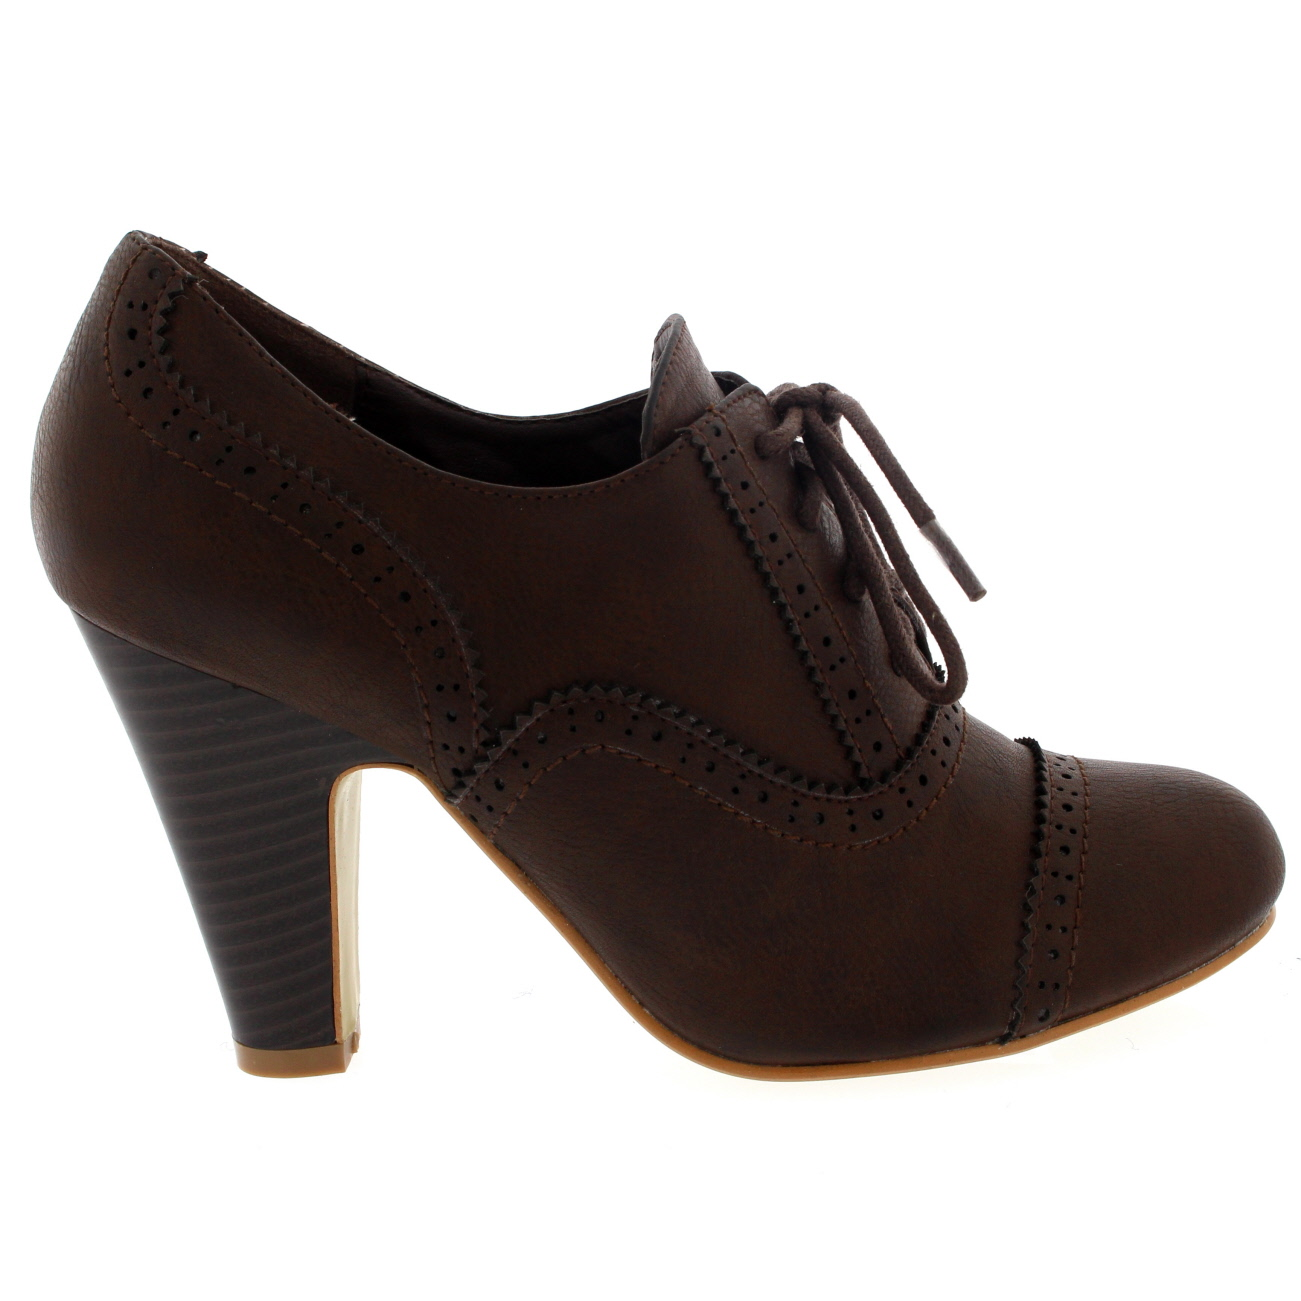 a450c8eb02a1d Details about Womens Mary Jane Brogue Lace Up Ankle Boot Cuban Heels Work  Office Shoes UK 3-9